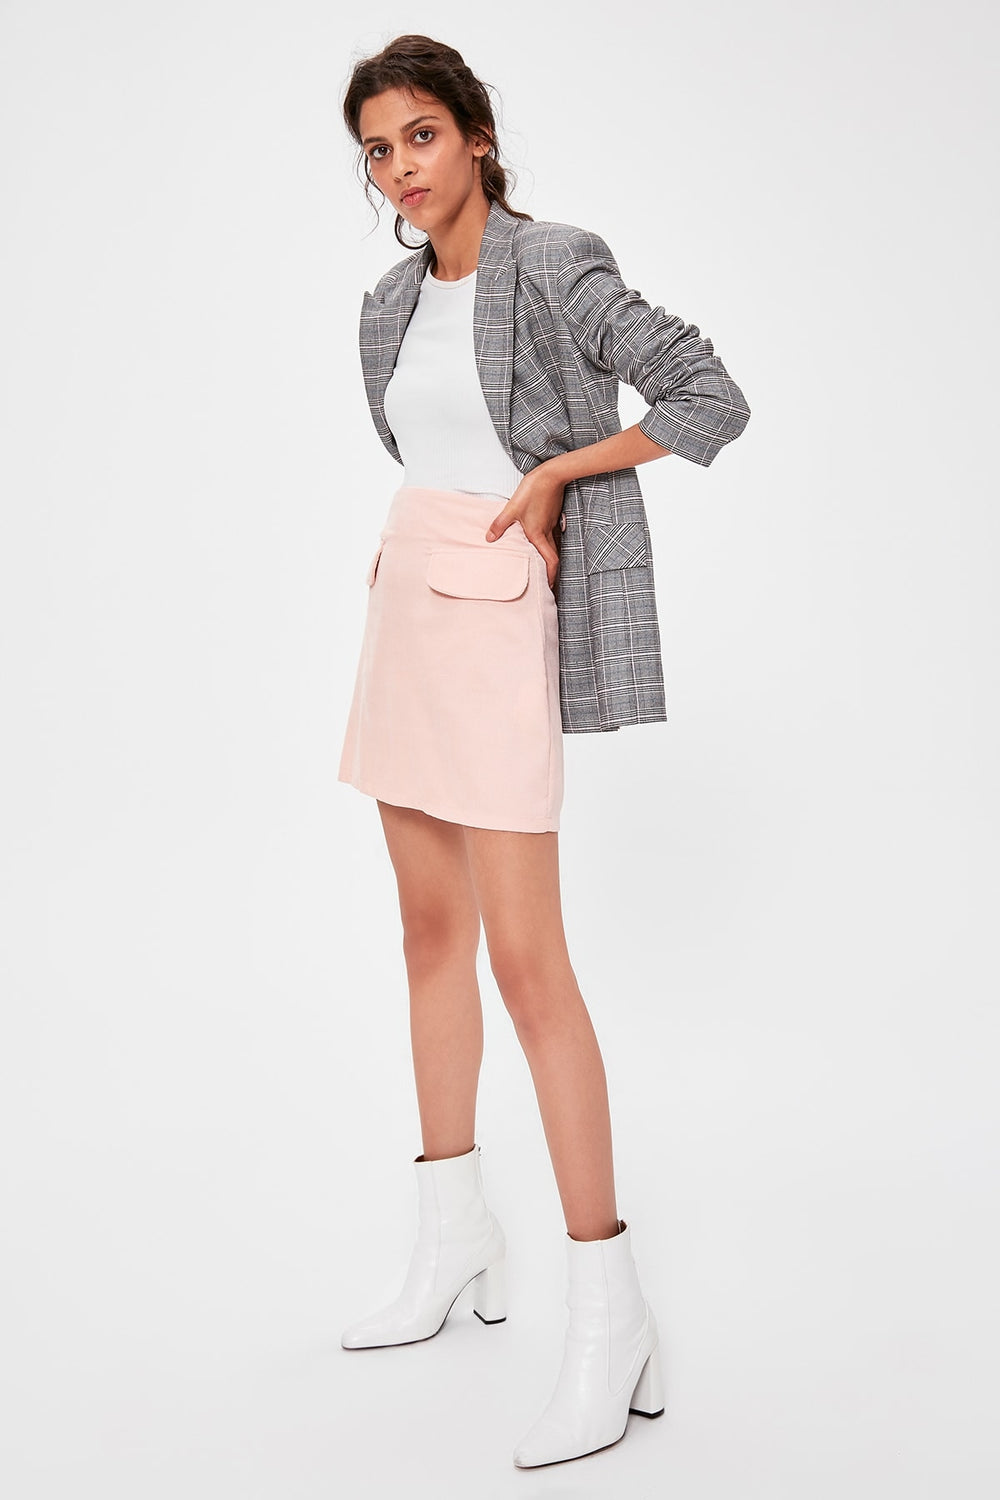 Miss Zut Miss Zut Pink Pocket Detail Skirt Miss Zut &CO